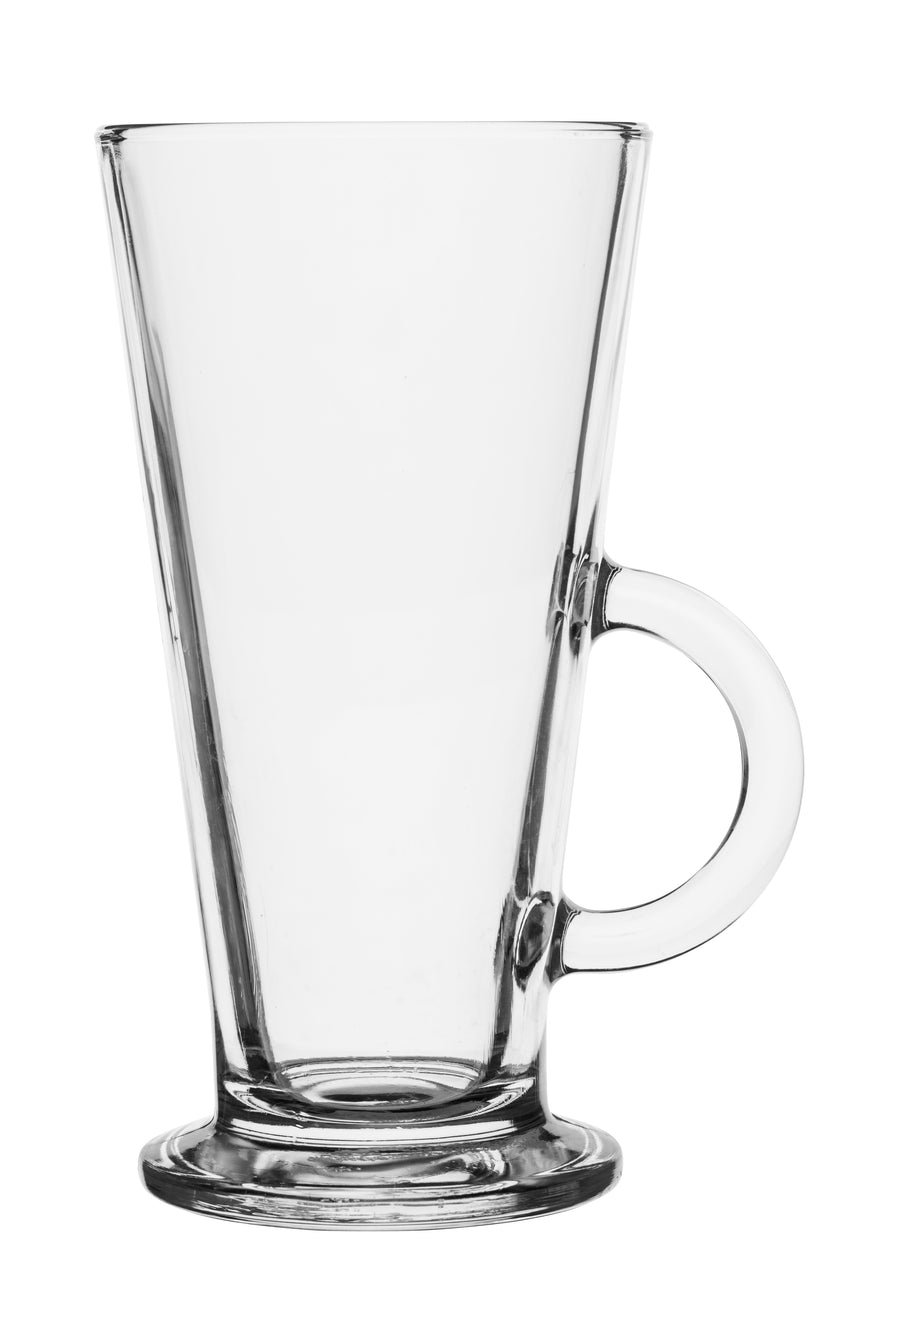 Sagaform - Club Irish coffee glass 2-pack - Vama Kitchens Ltd